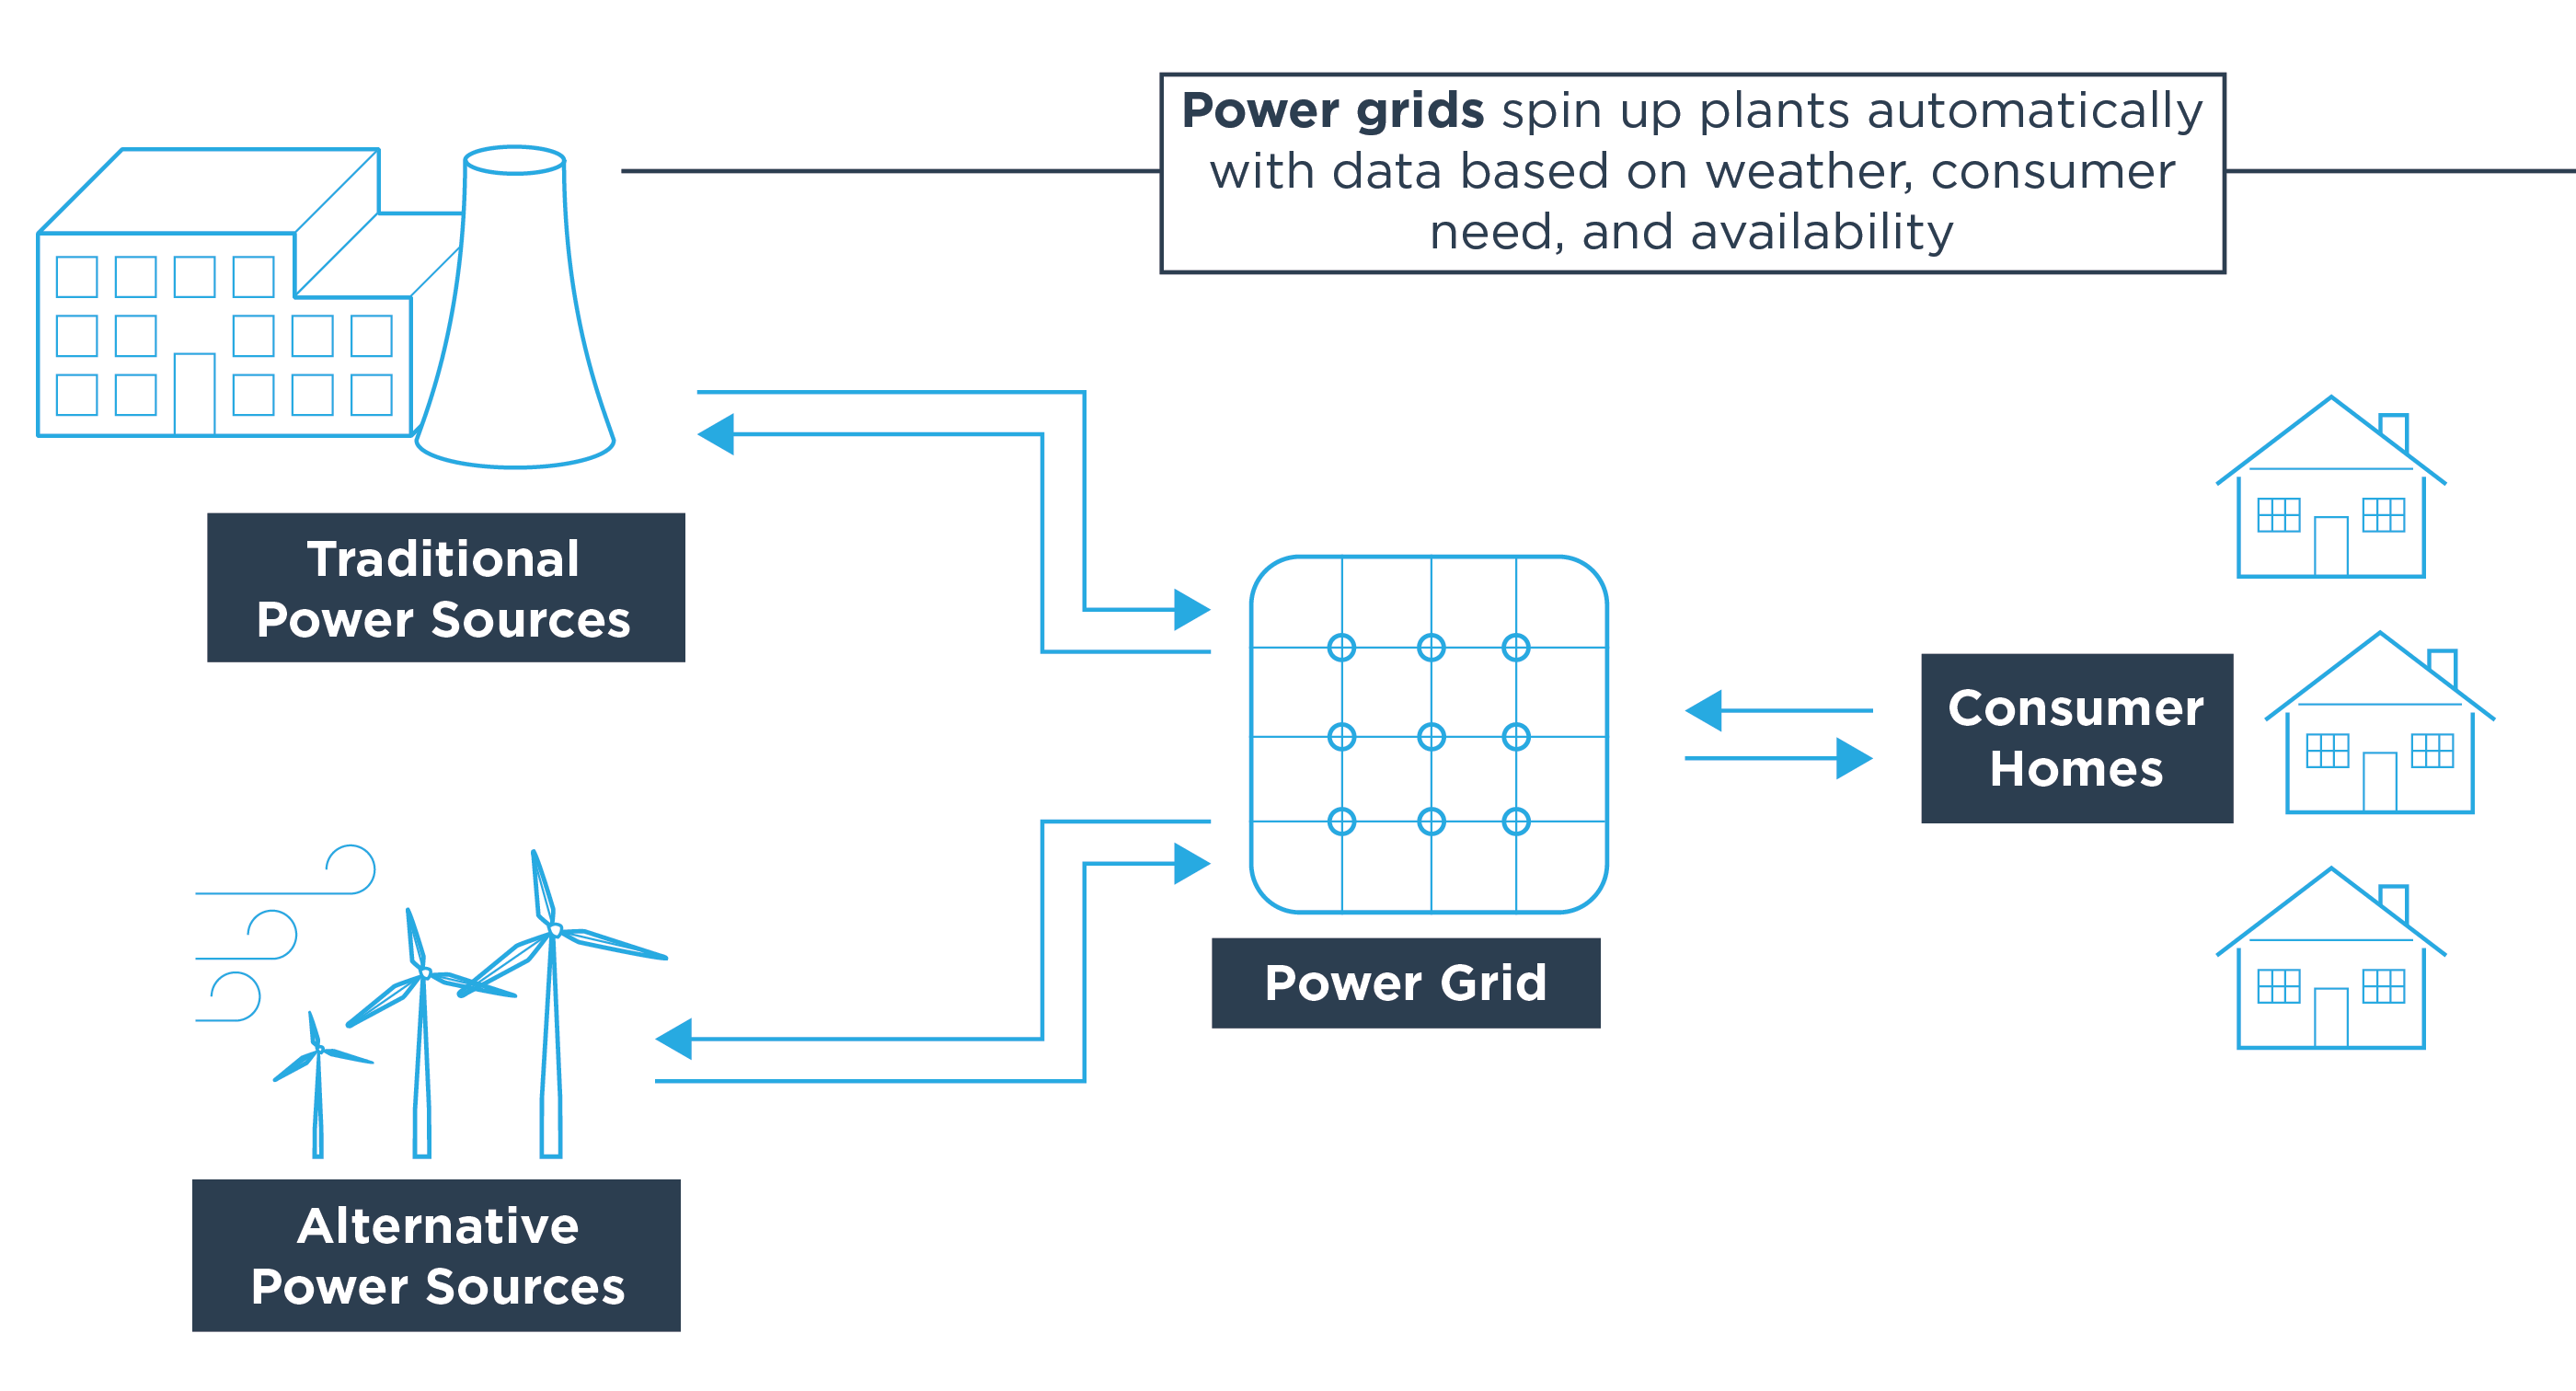 Power grids spin up plants automatically with data based on weather, consumer need, and availability